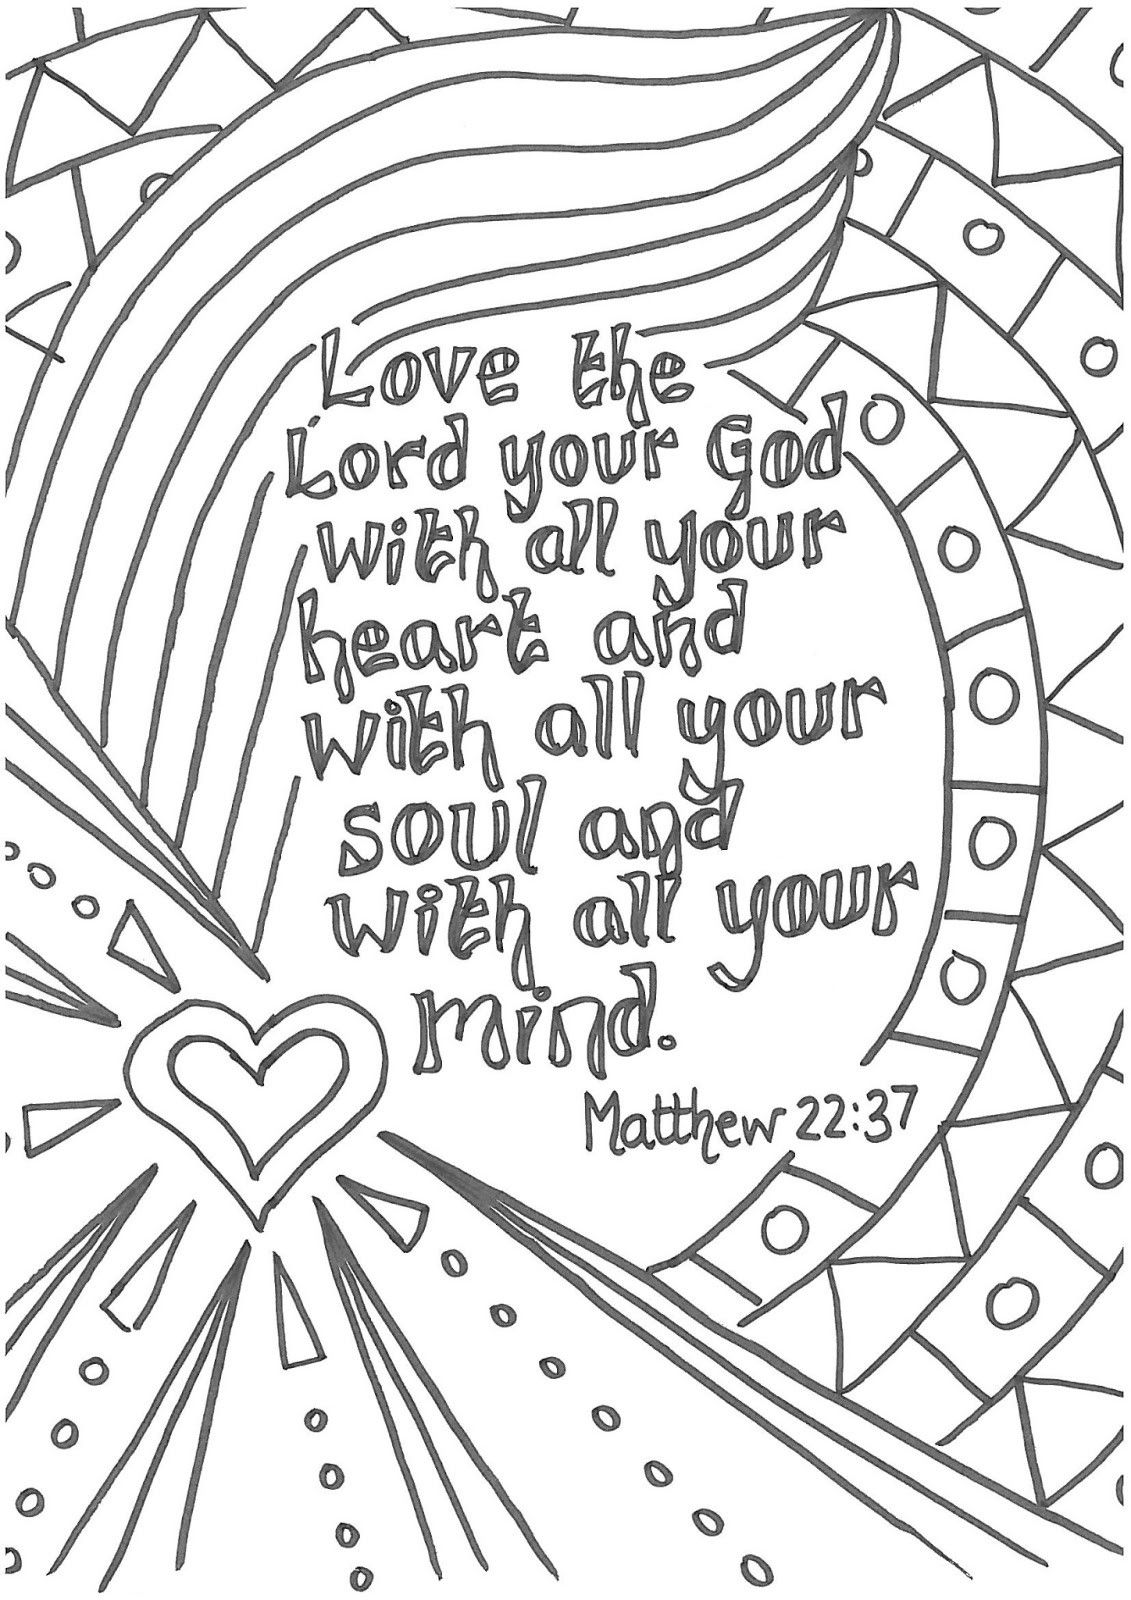 Detailed Coloring Pages For Older Kids Bible Verse Coloring Page Bible Verse Coloring Bible Coloring Pages